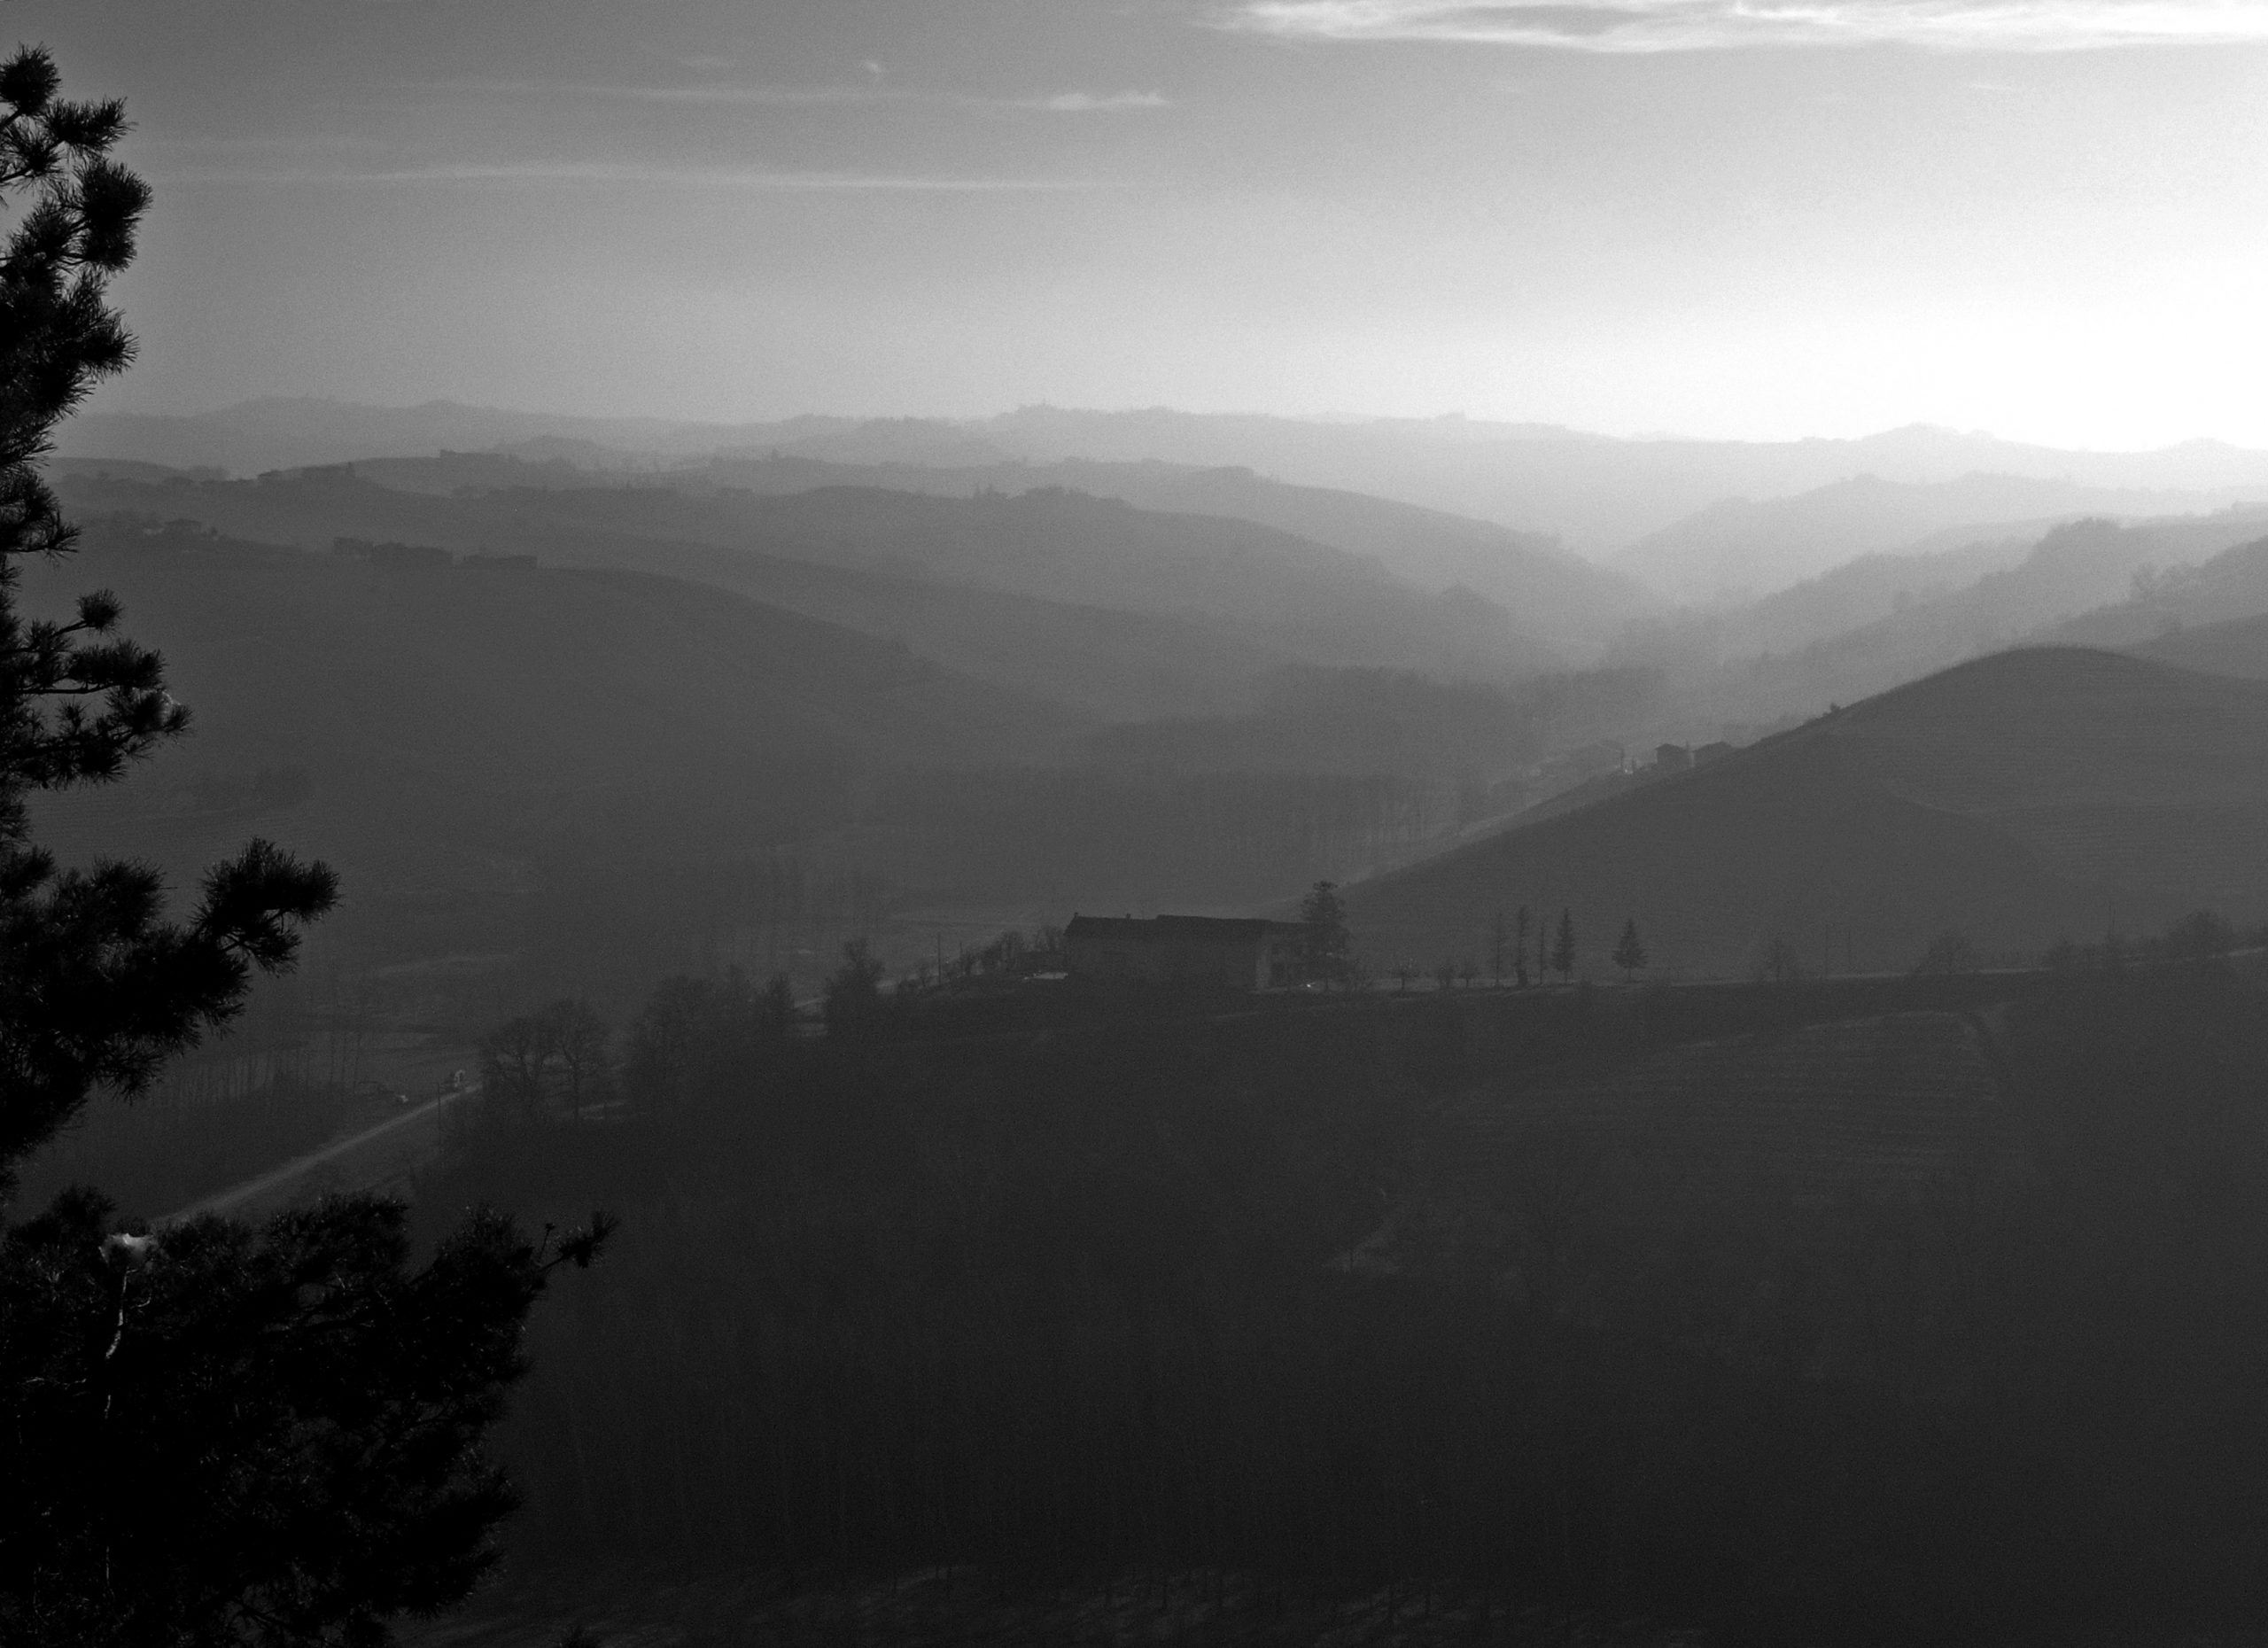 View from La Morra, Piedmont, Italy.